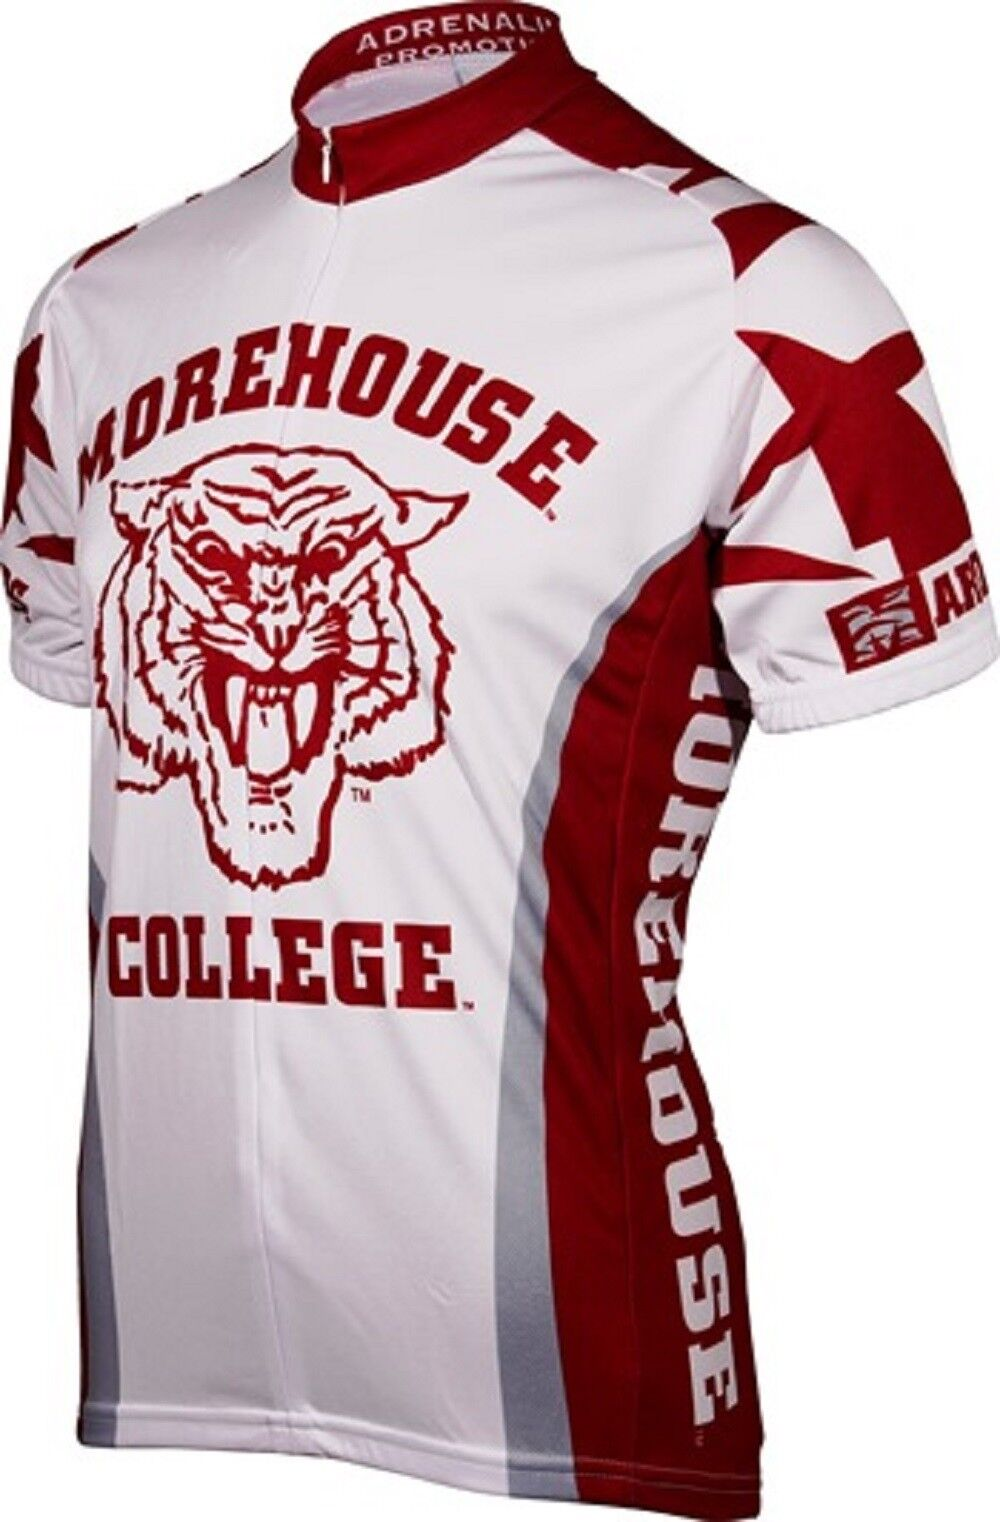 NCAA Men's Adrenaline Promotions  Morehouse College Cycling Jersey  floor price